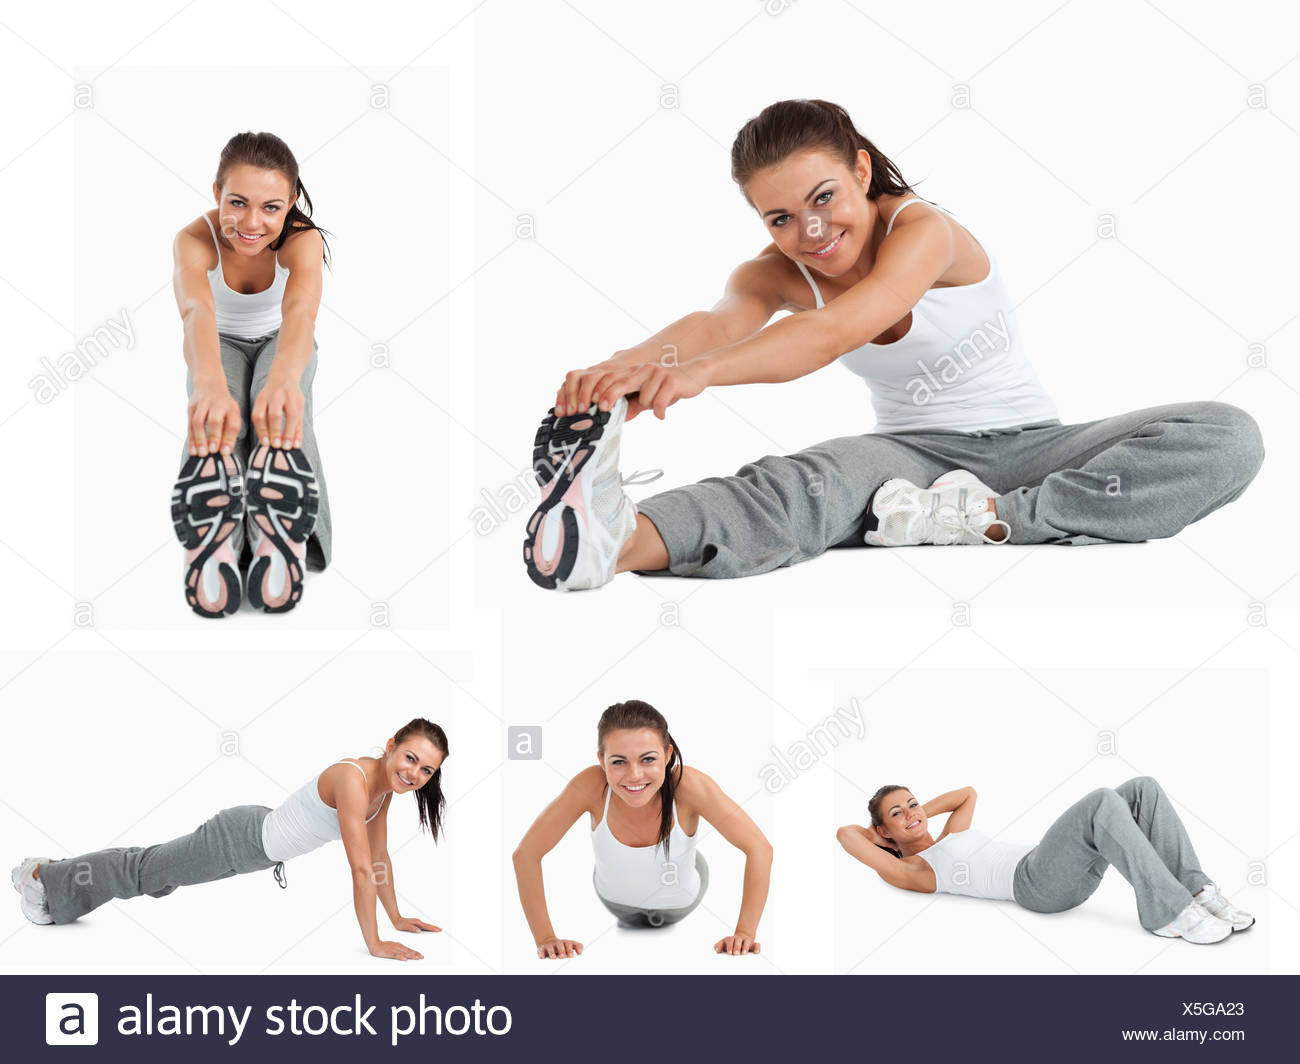 Collage of woman stretching - Stock Image